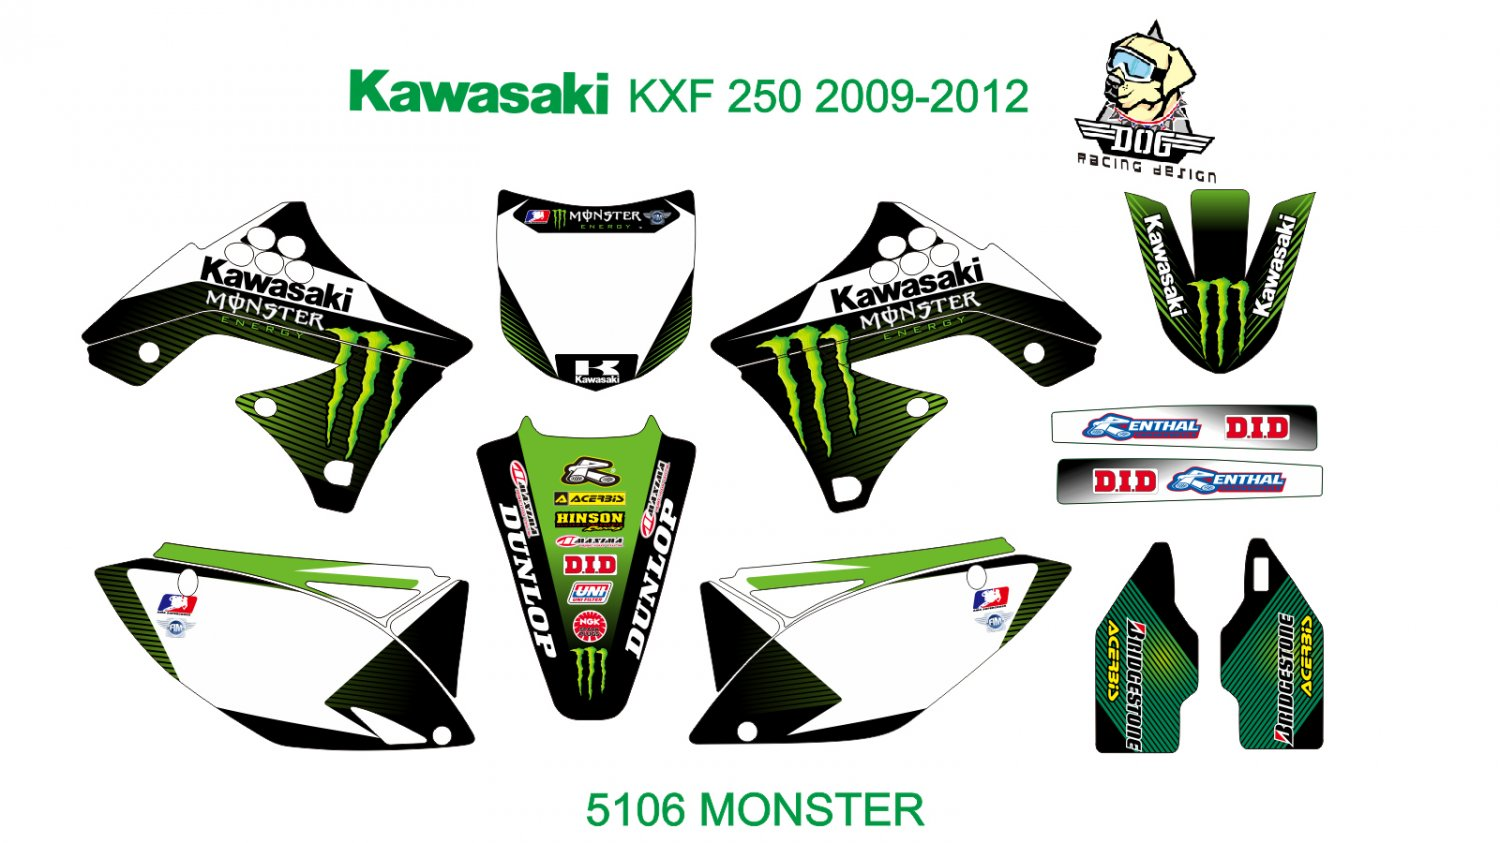 KAWASAKI KXF 250 2009-2012 GRAPHIC DECAL KIT CODE.5106